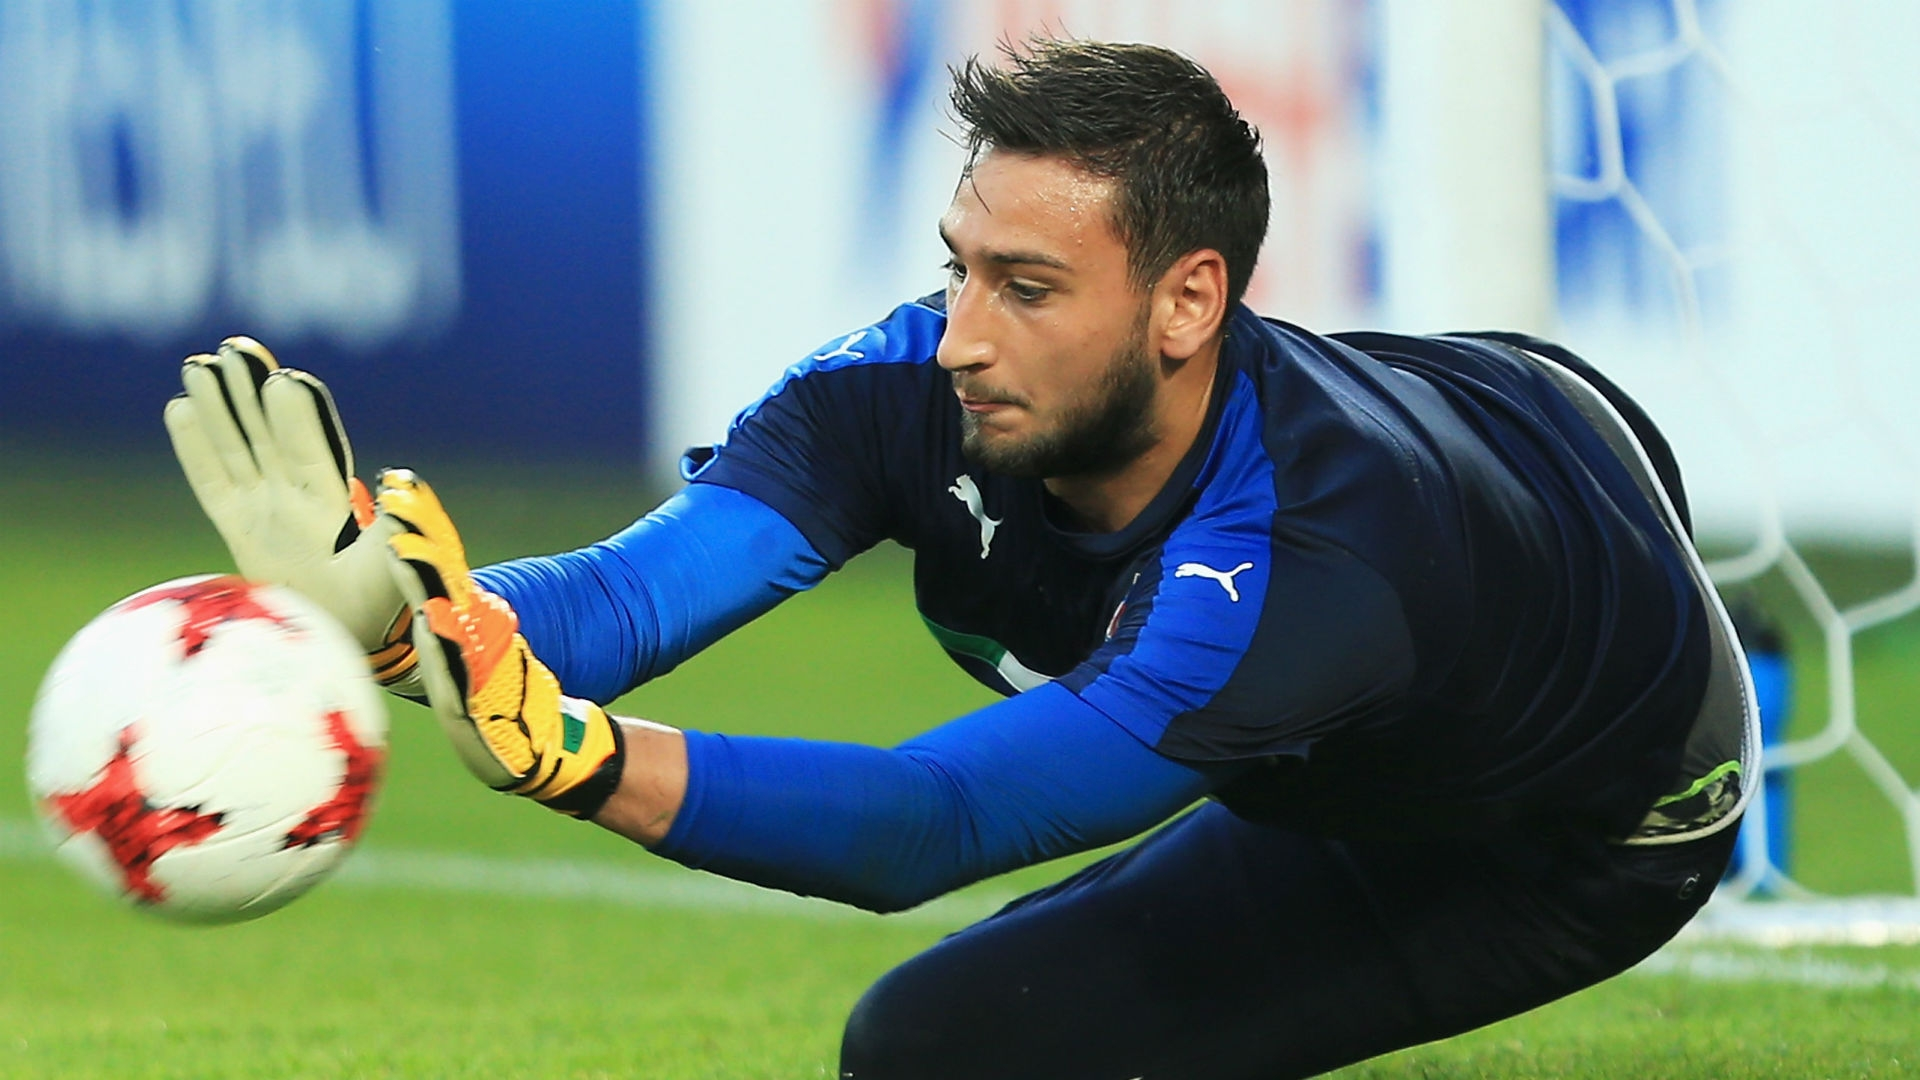 With an agent that was constantly reminding Milan's board of the numerous offers he had lined up for Donnarumma, many were waiting for the official announcement regarding the goalkeeper's departure.